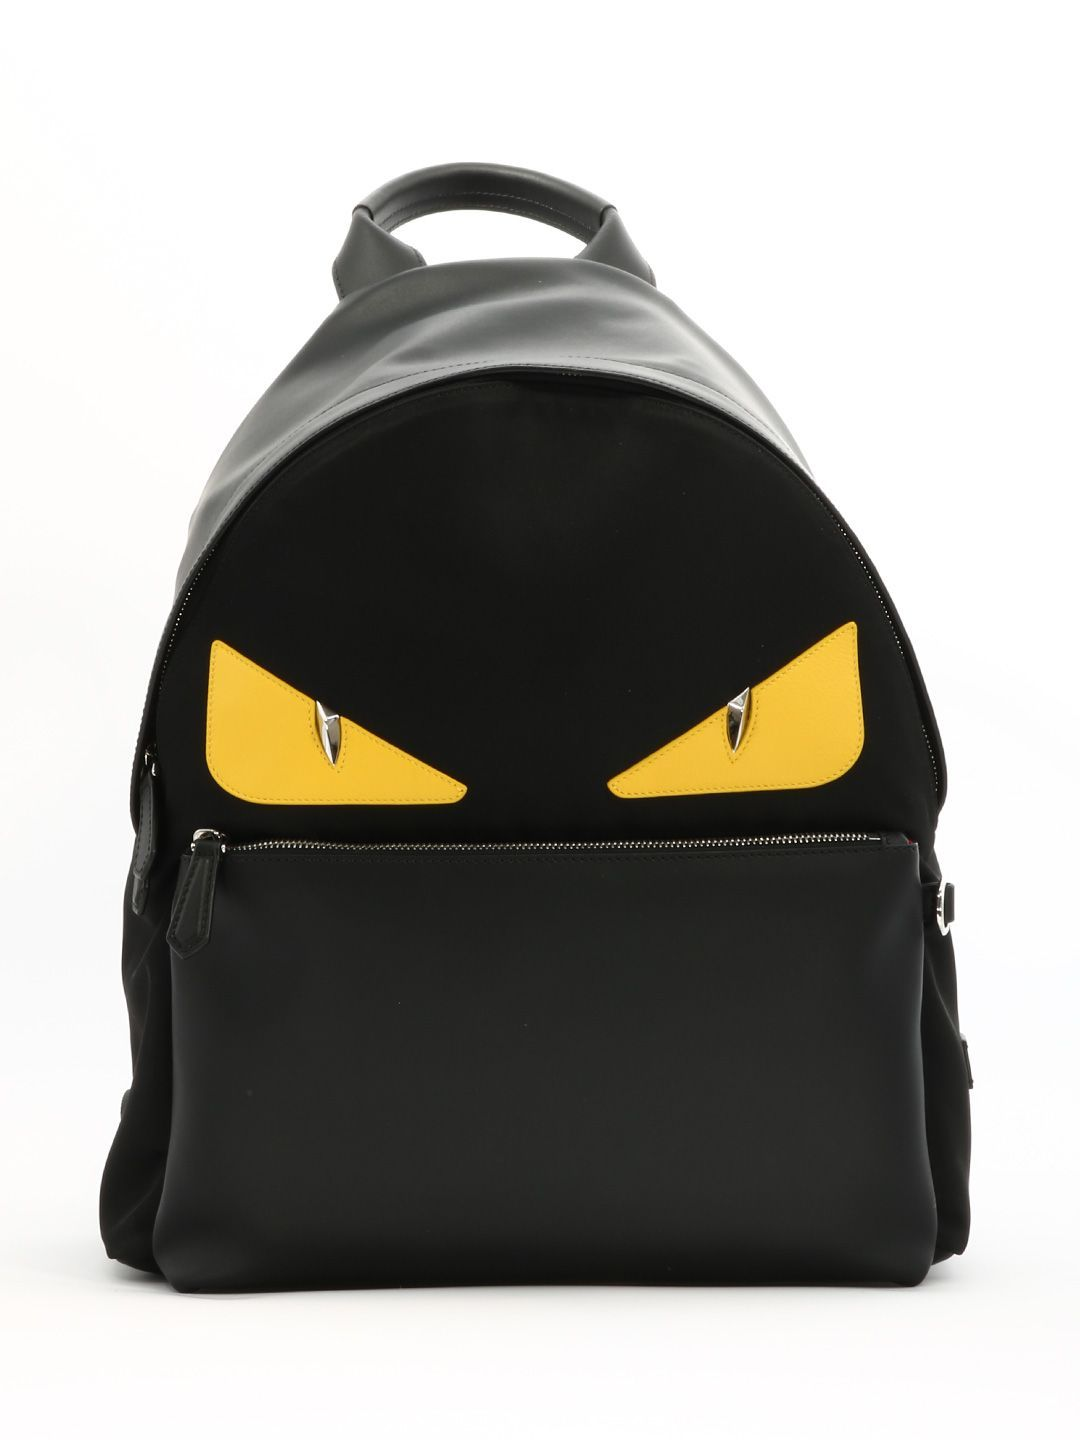 25c21085c0f7 FENDI BLACK BACKPACK YELLOW EYES.  fendi  bags  leather  nylon  backpacks